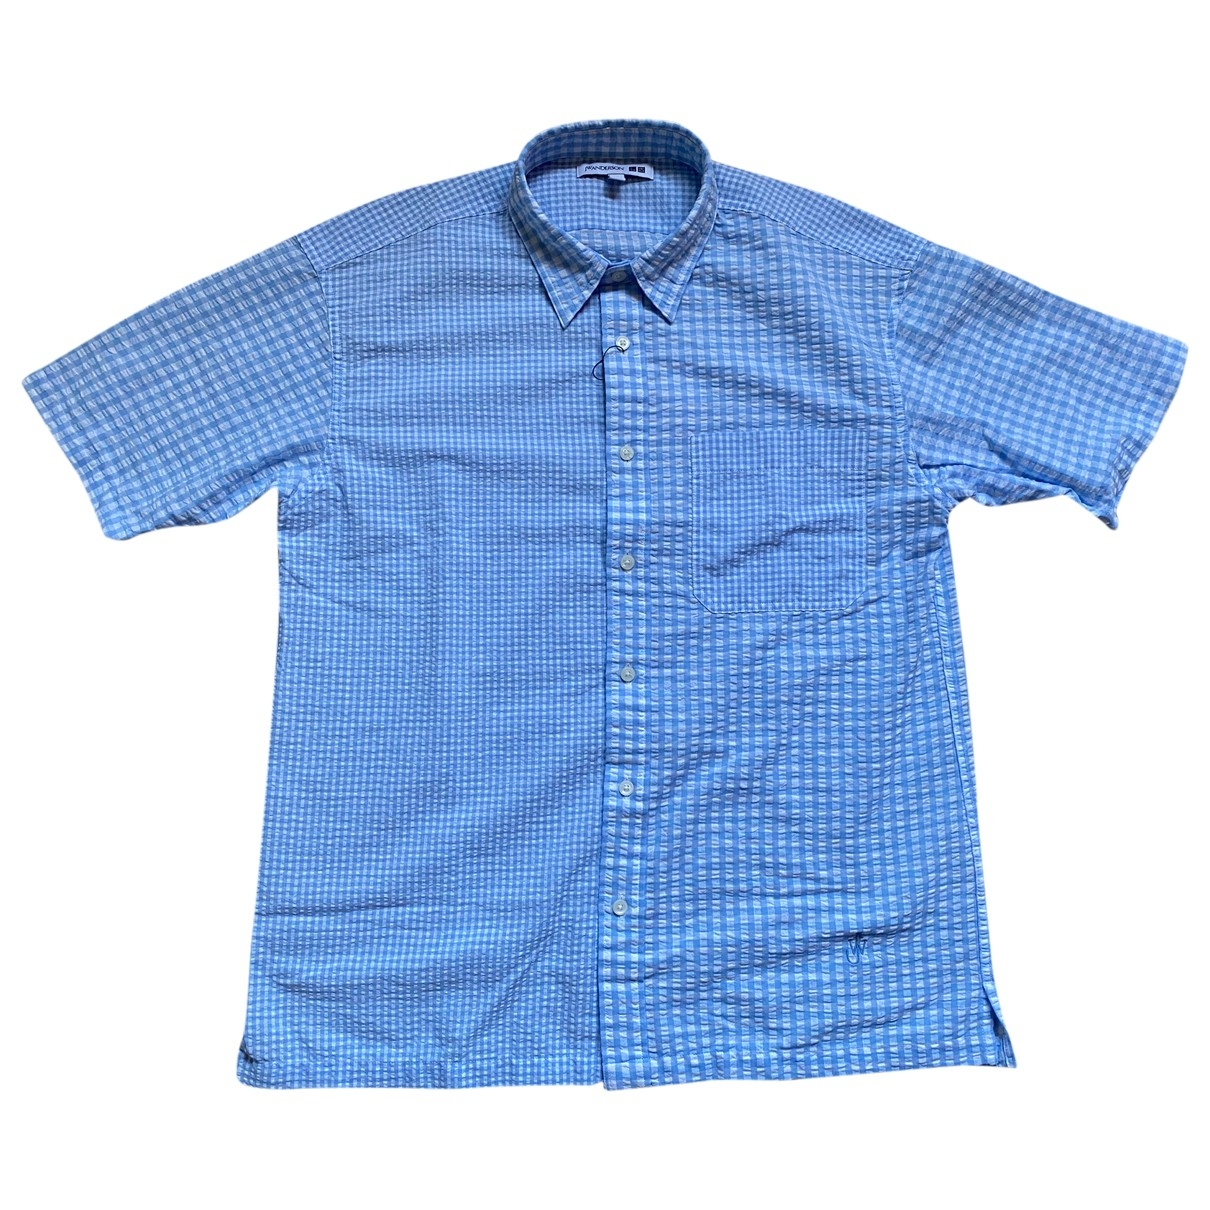 Uniqlo \N Blue Shirts for Men S International